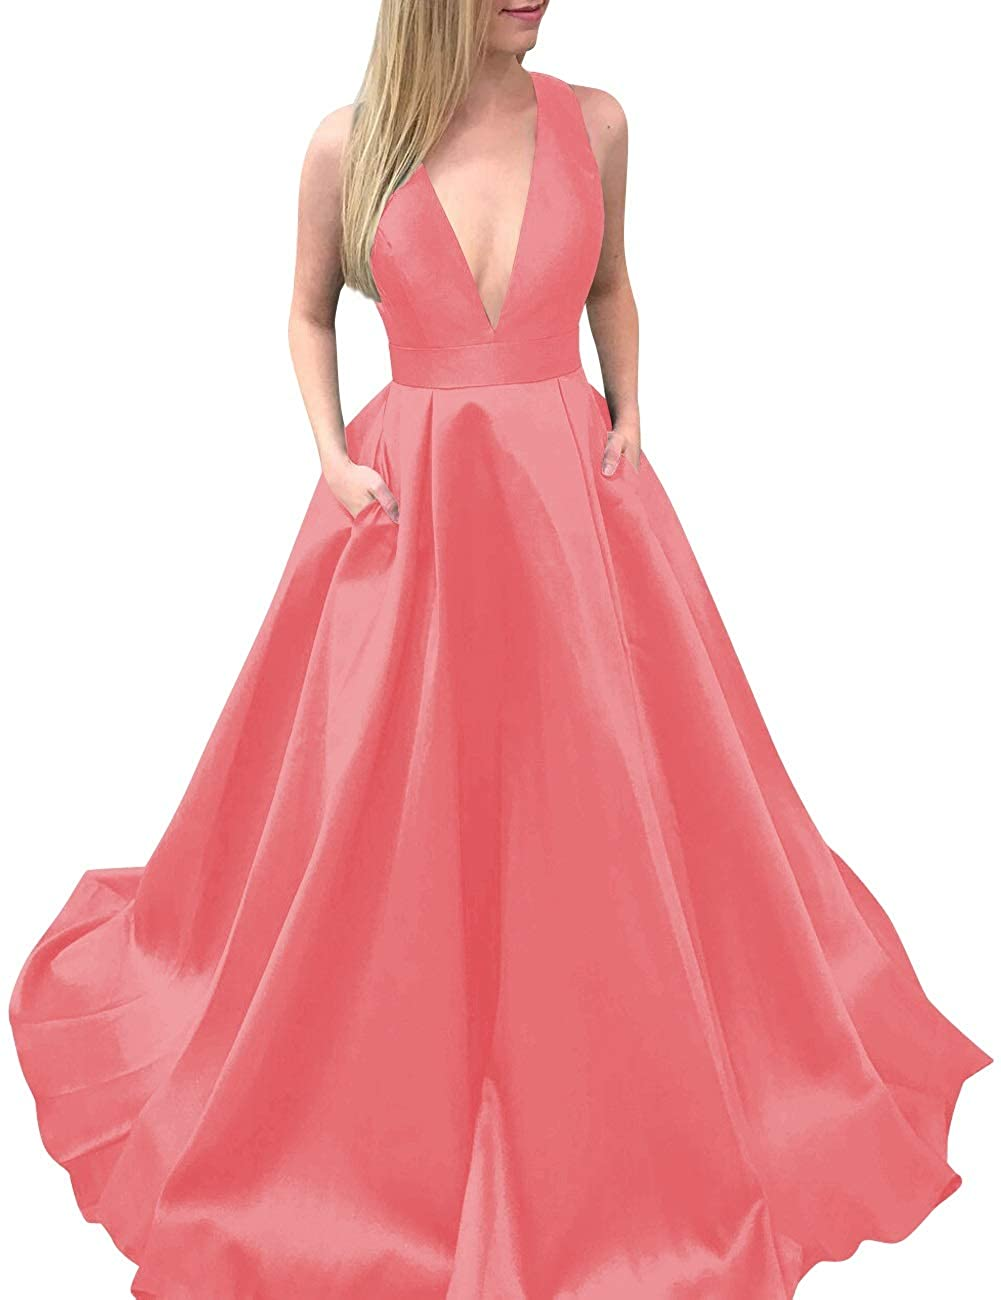 Coral MorySong Women's Deep VNeck Bowknot Back Satin Prom Evening Dress with Pockets